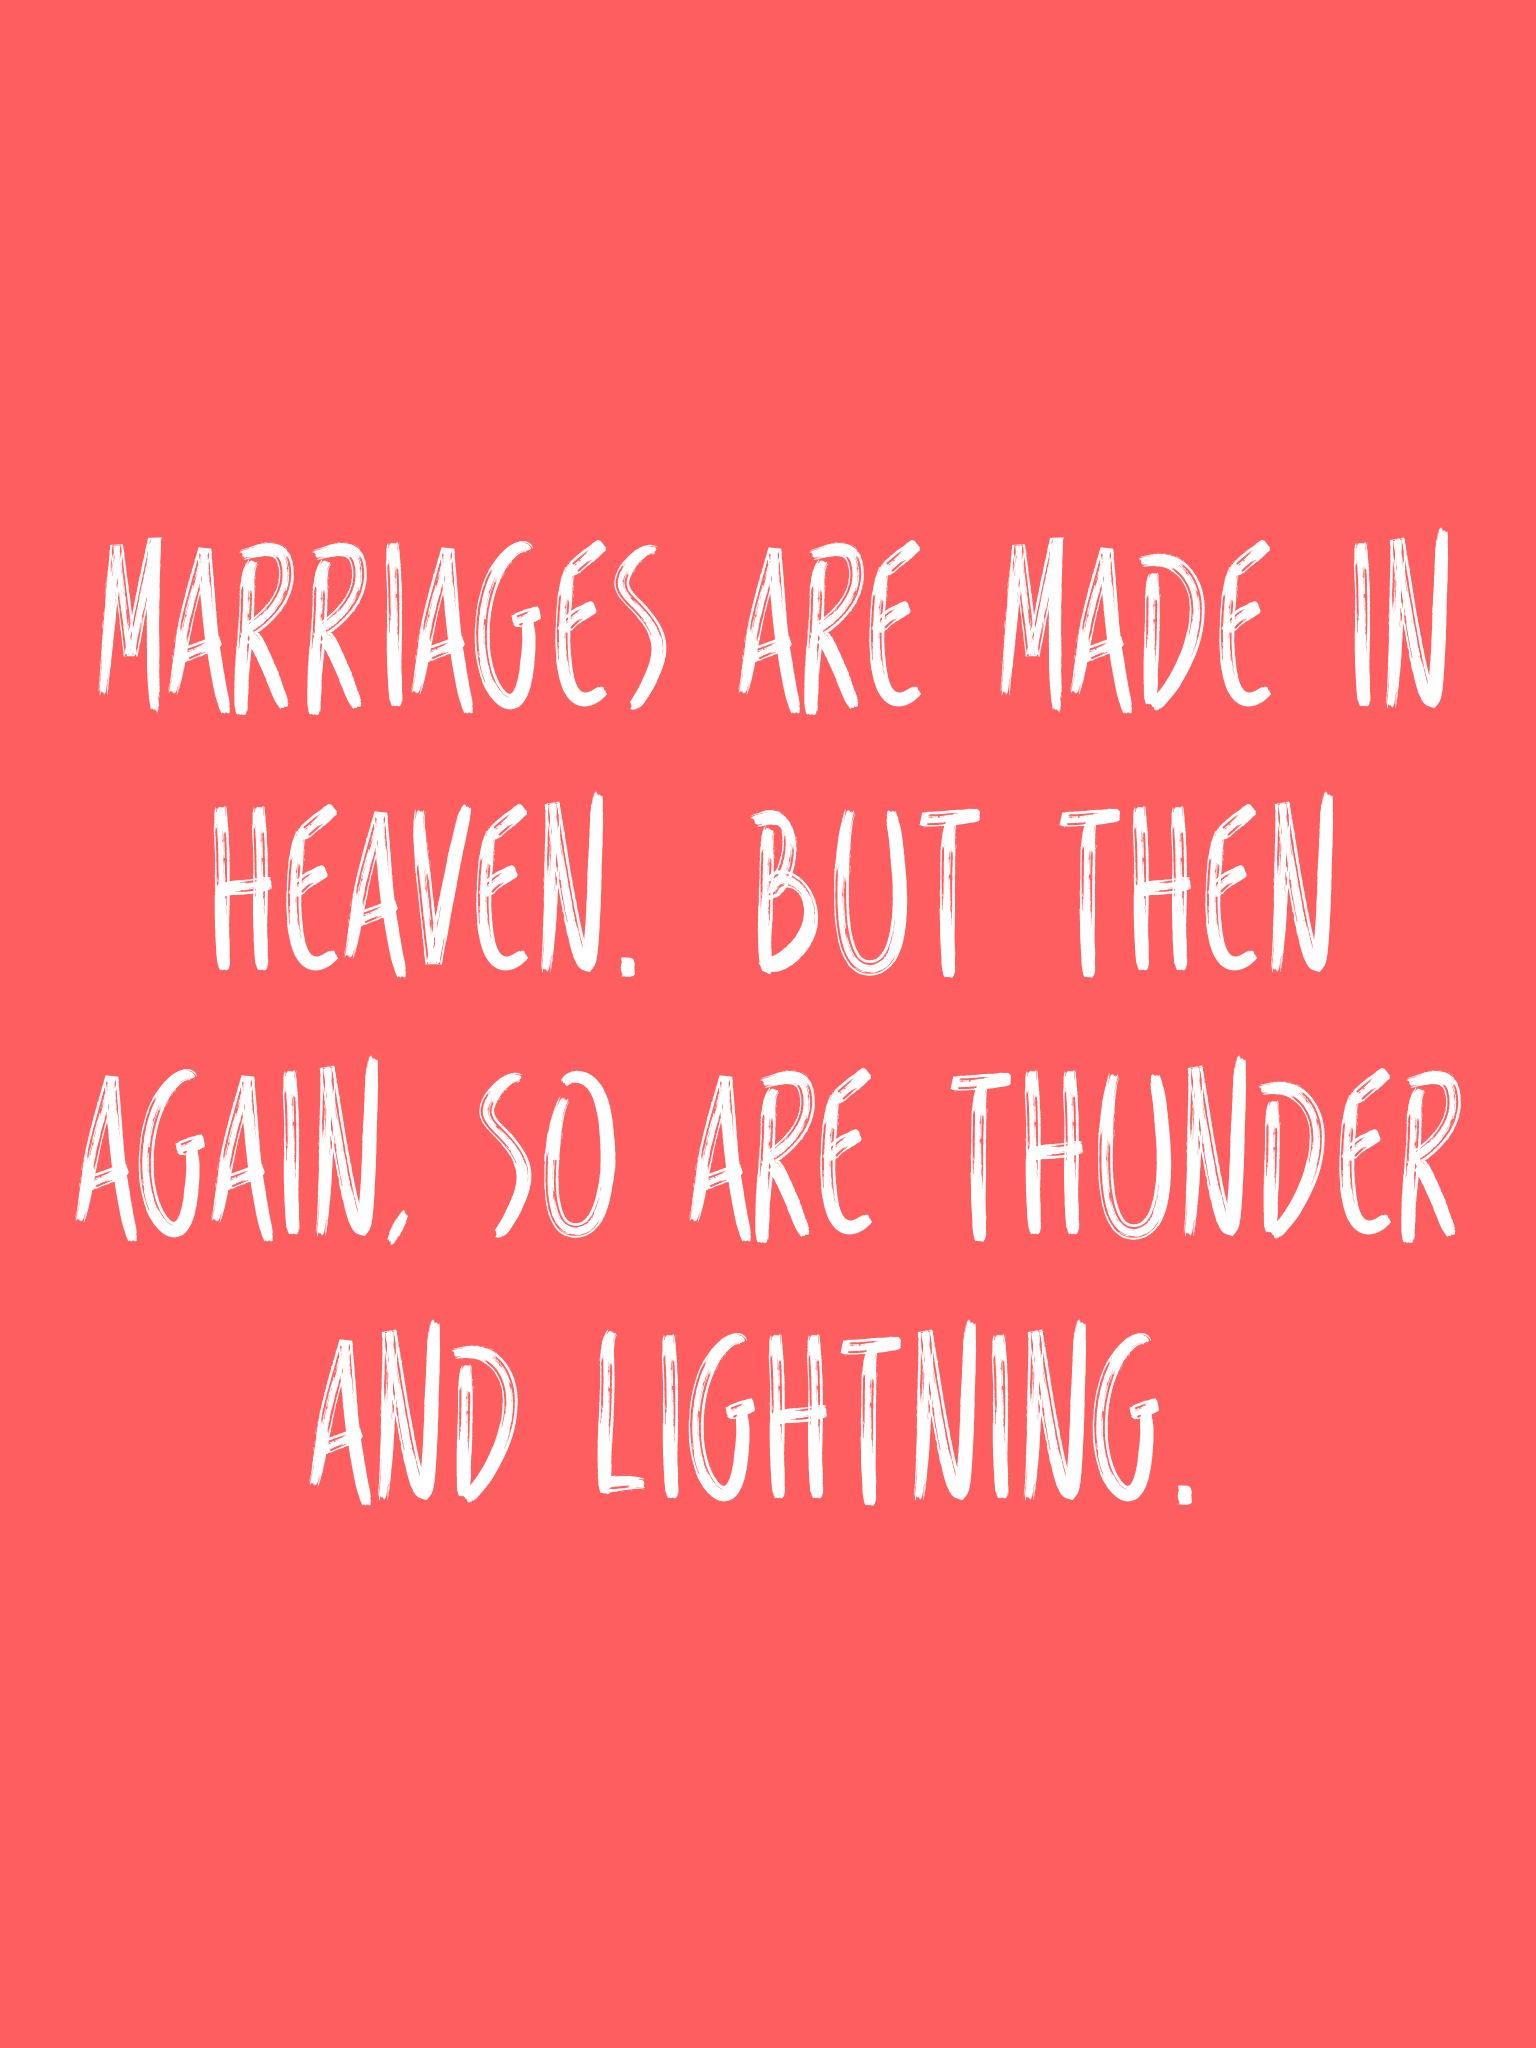 Love Quotes App Gorgeous Marriages Are Made In Heavenbut Then Again So Are Thunder And